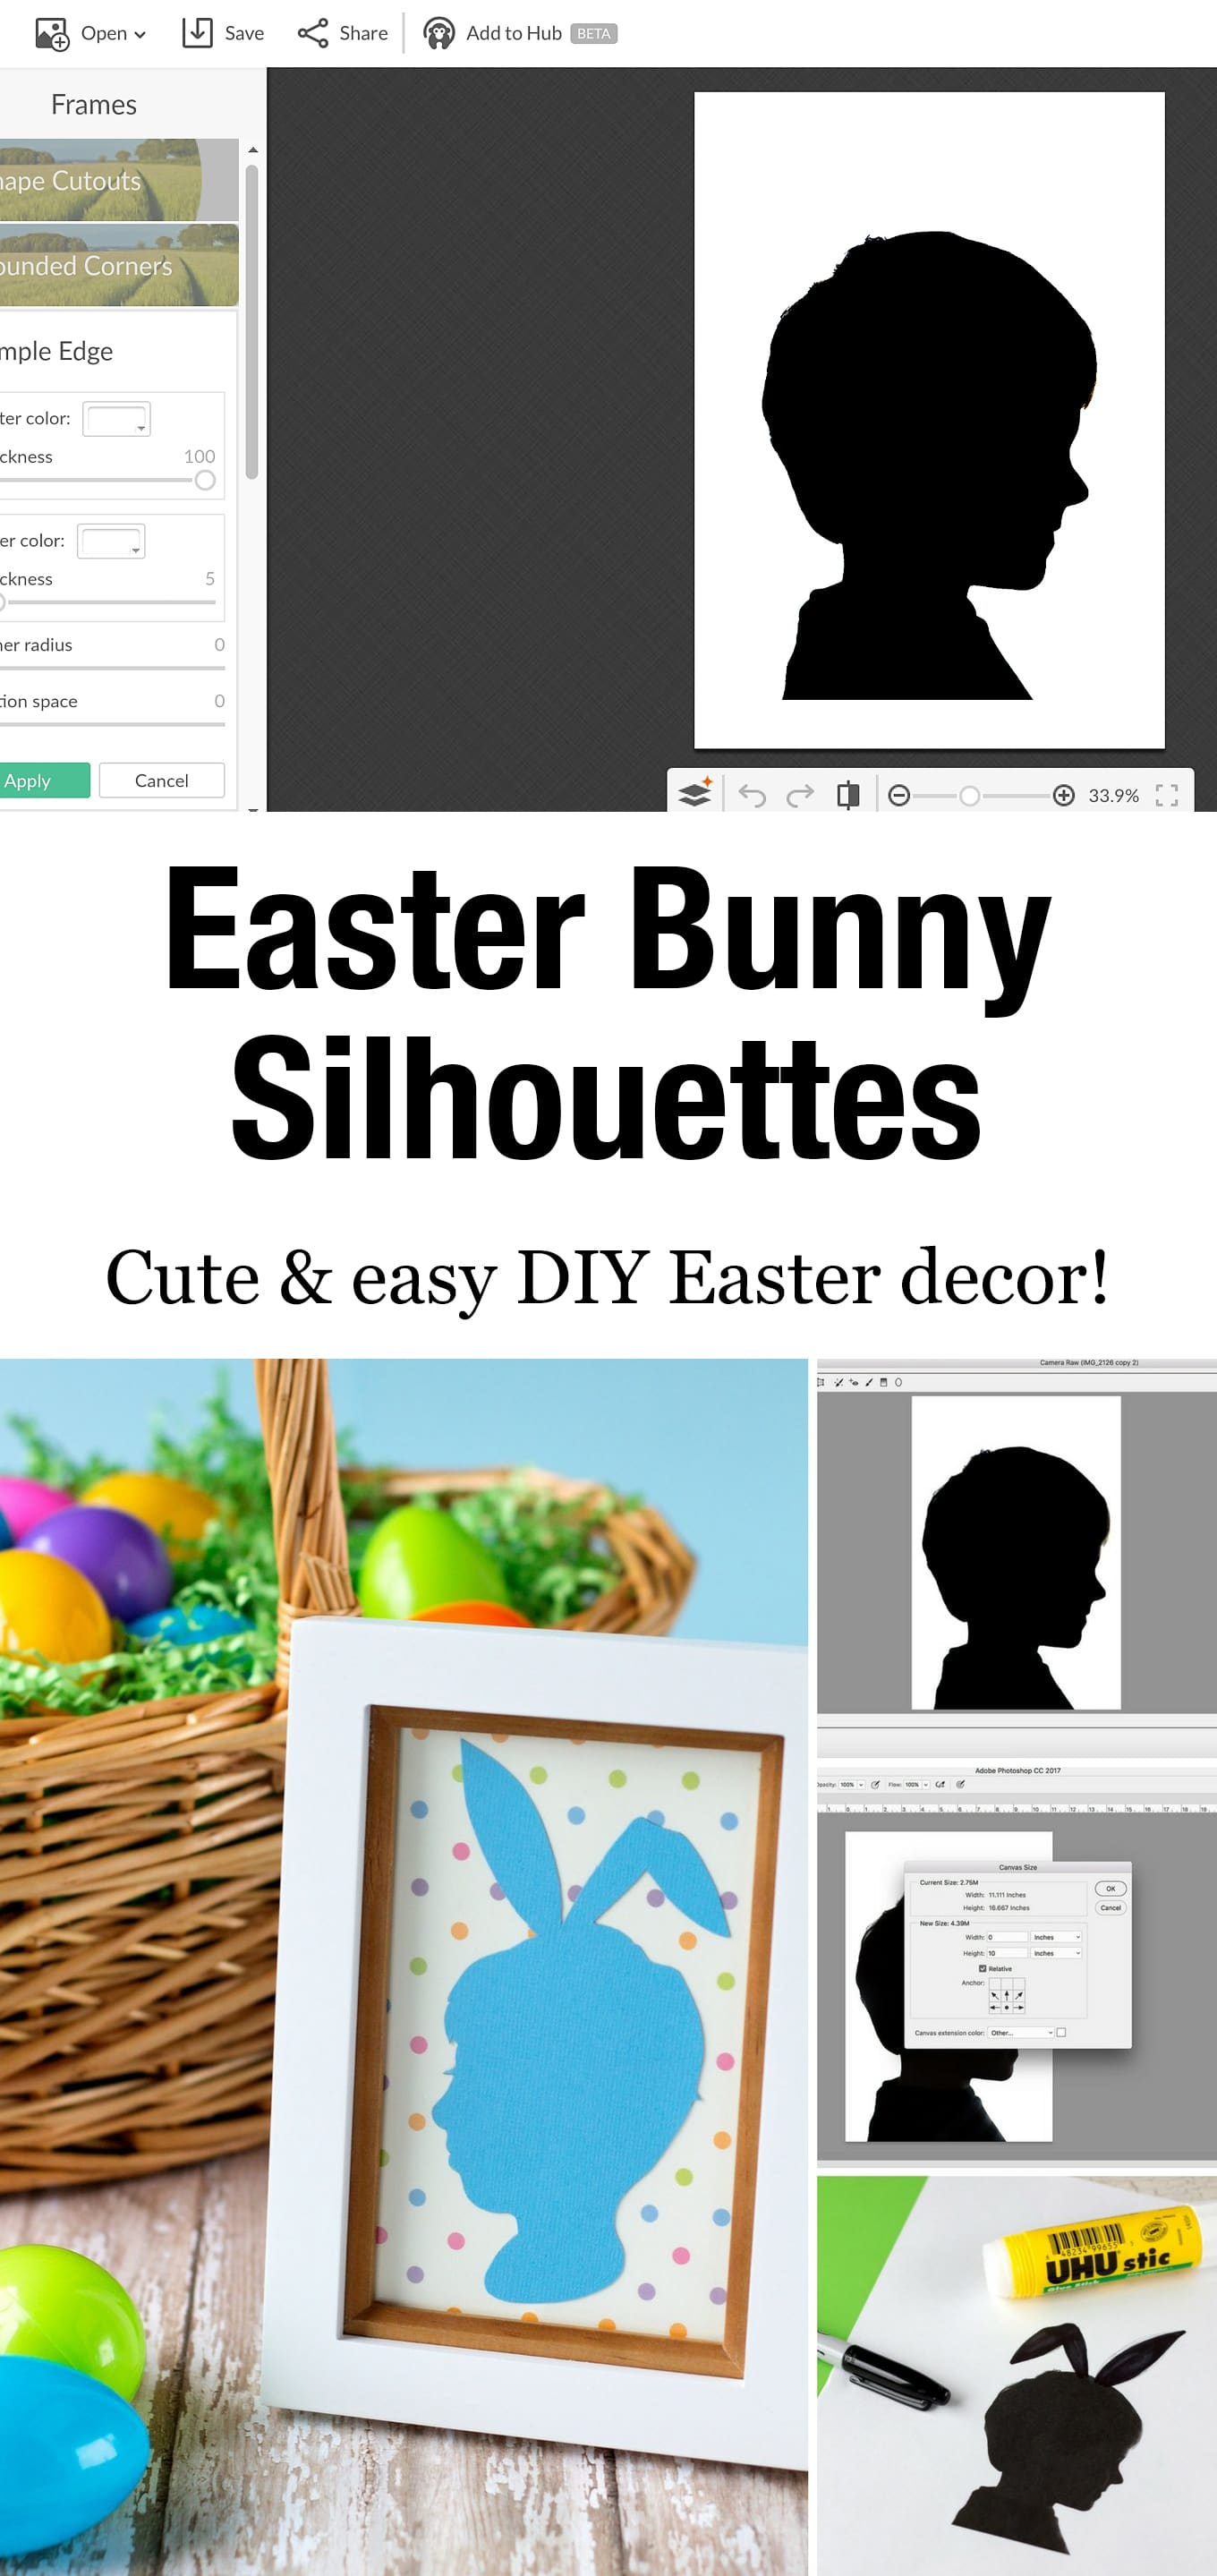 Easter Silhouette Portraits are an easy and fun Easter keepsake craft to make with your kids and enjoy year after year. It also makes a great gift! #easterkeepsakecraft #easter #silhouettecrafts #photocrafts #preschoolcrafts via @firefliesandmudpies